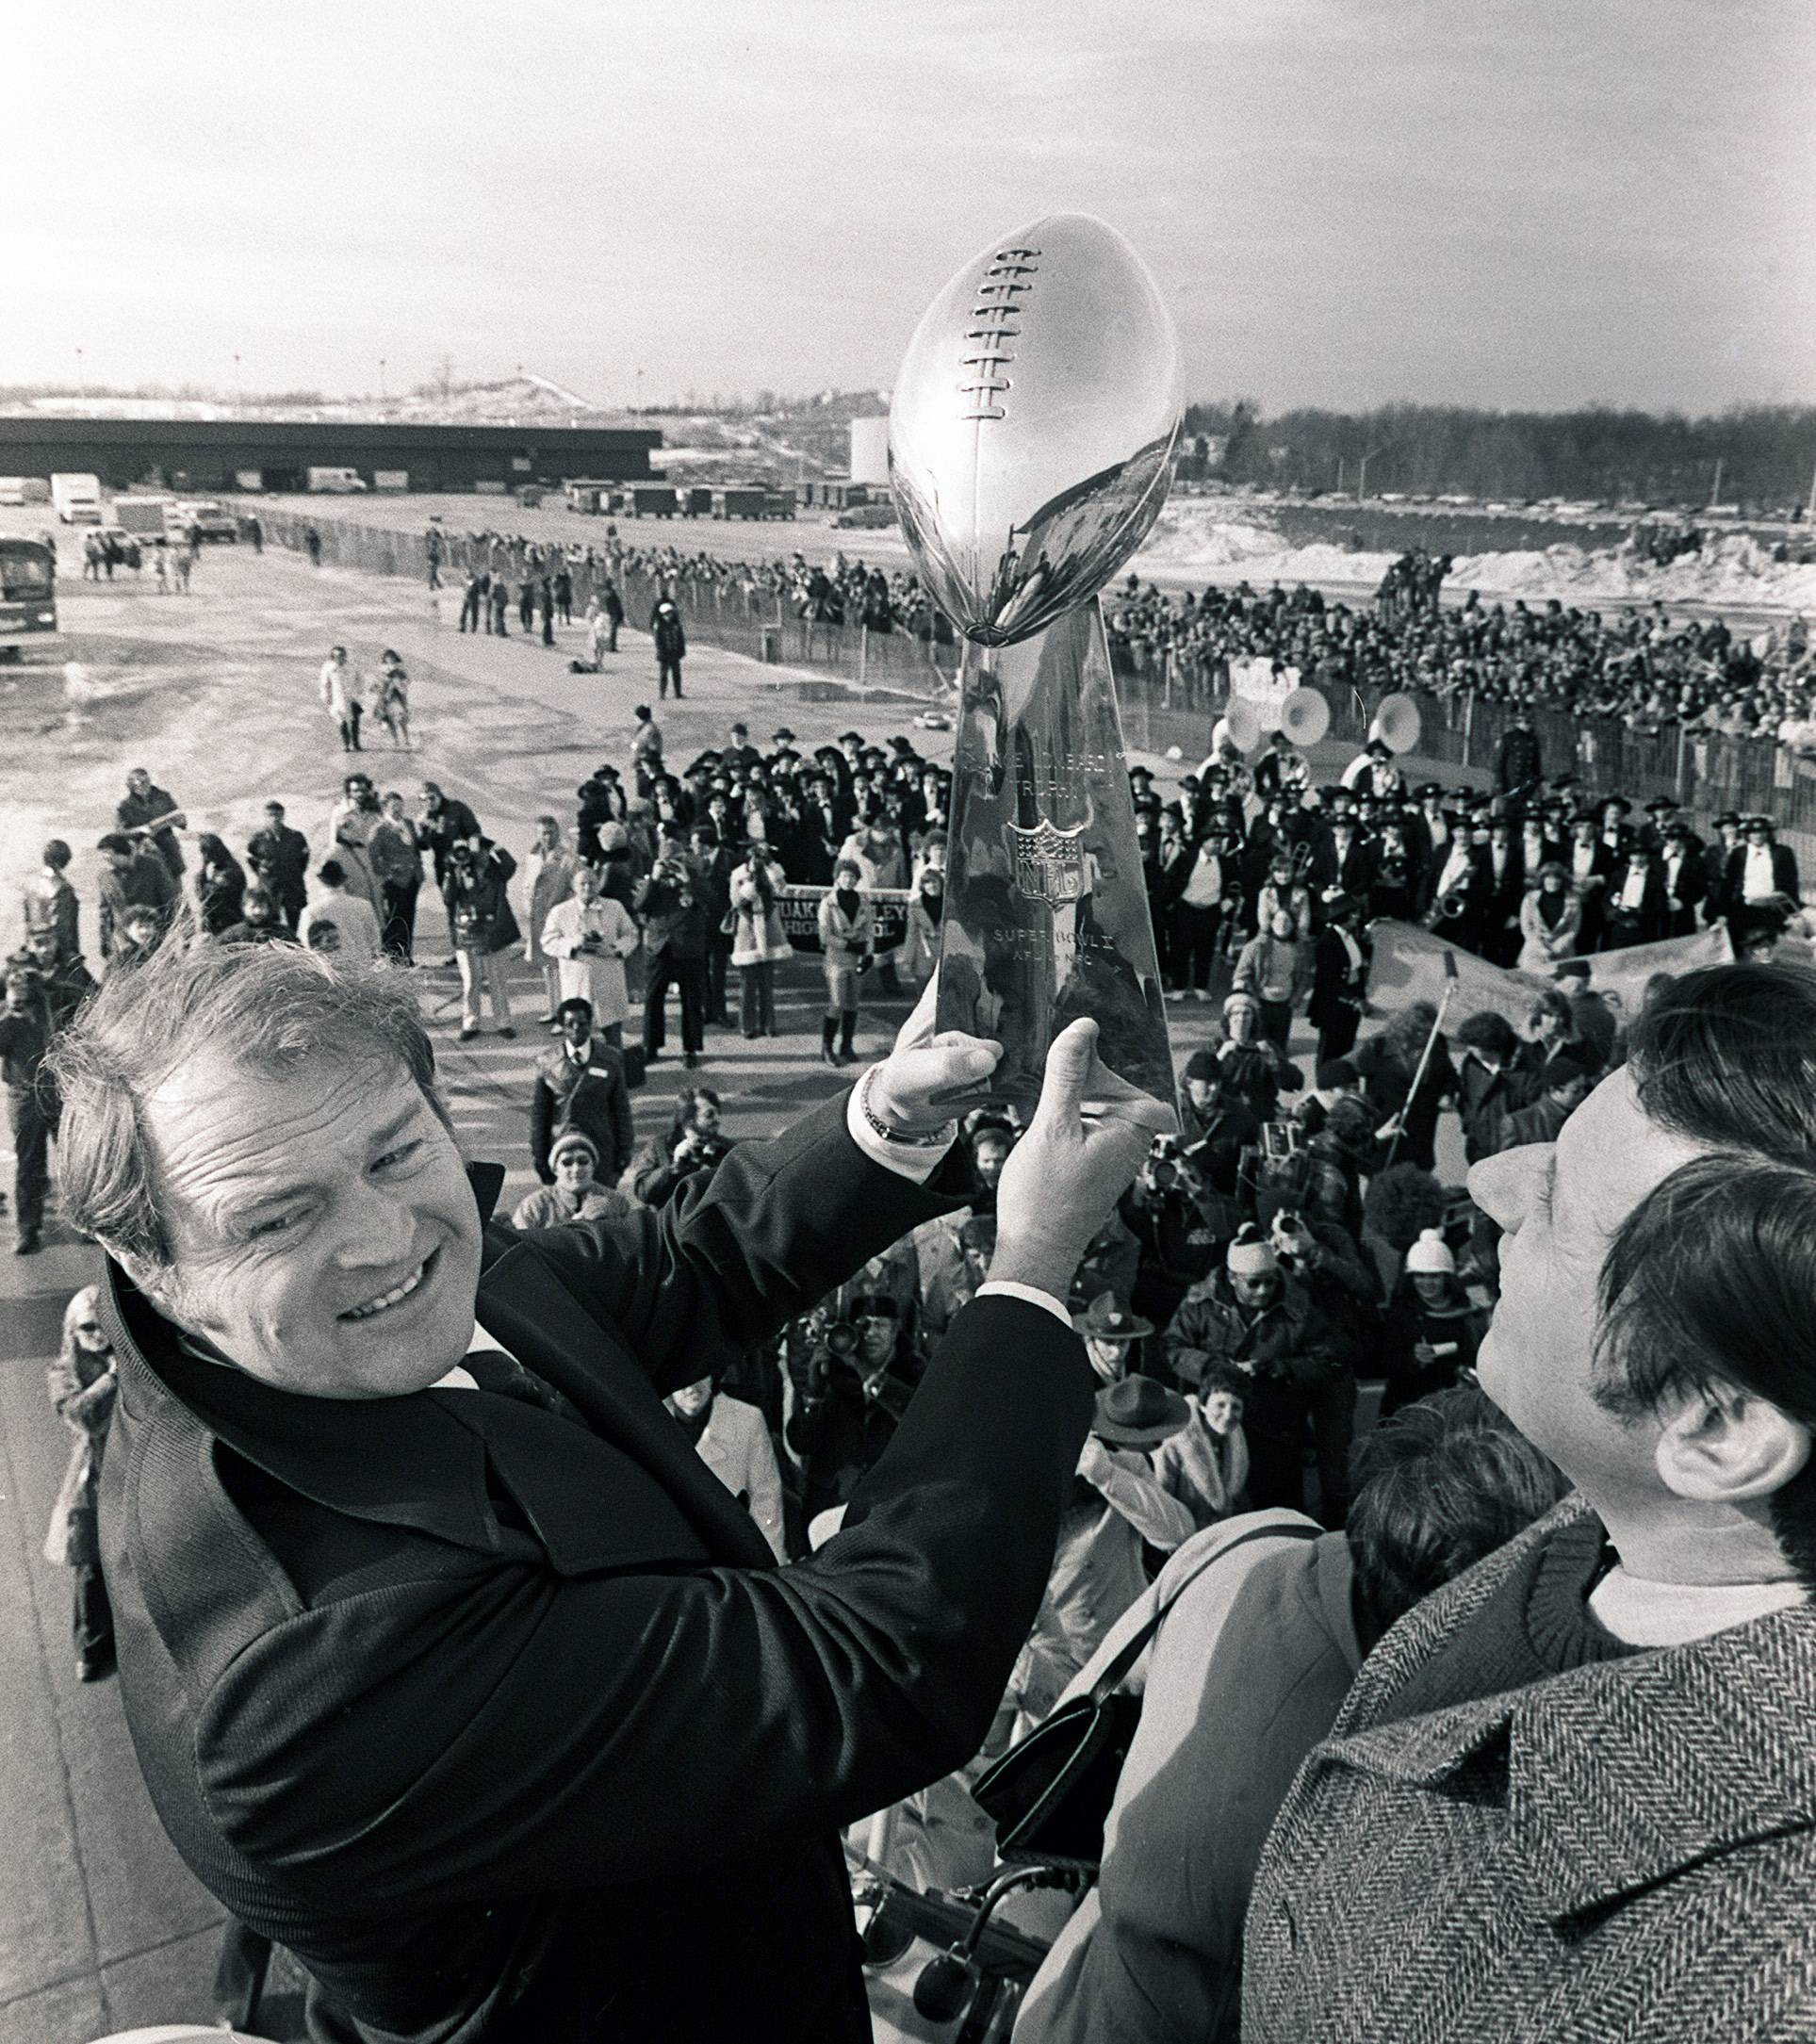 Steelers coach Chuck Noll holds the Vince Lombardi Trophy as team arrives at a Pittsburgh airport after winning the Super Bowl in 1979.